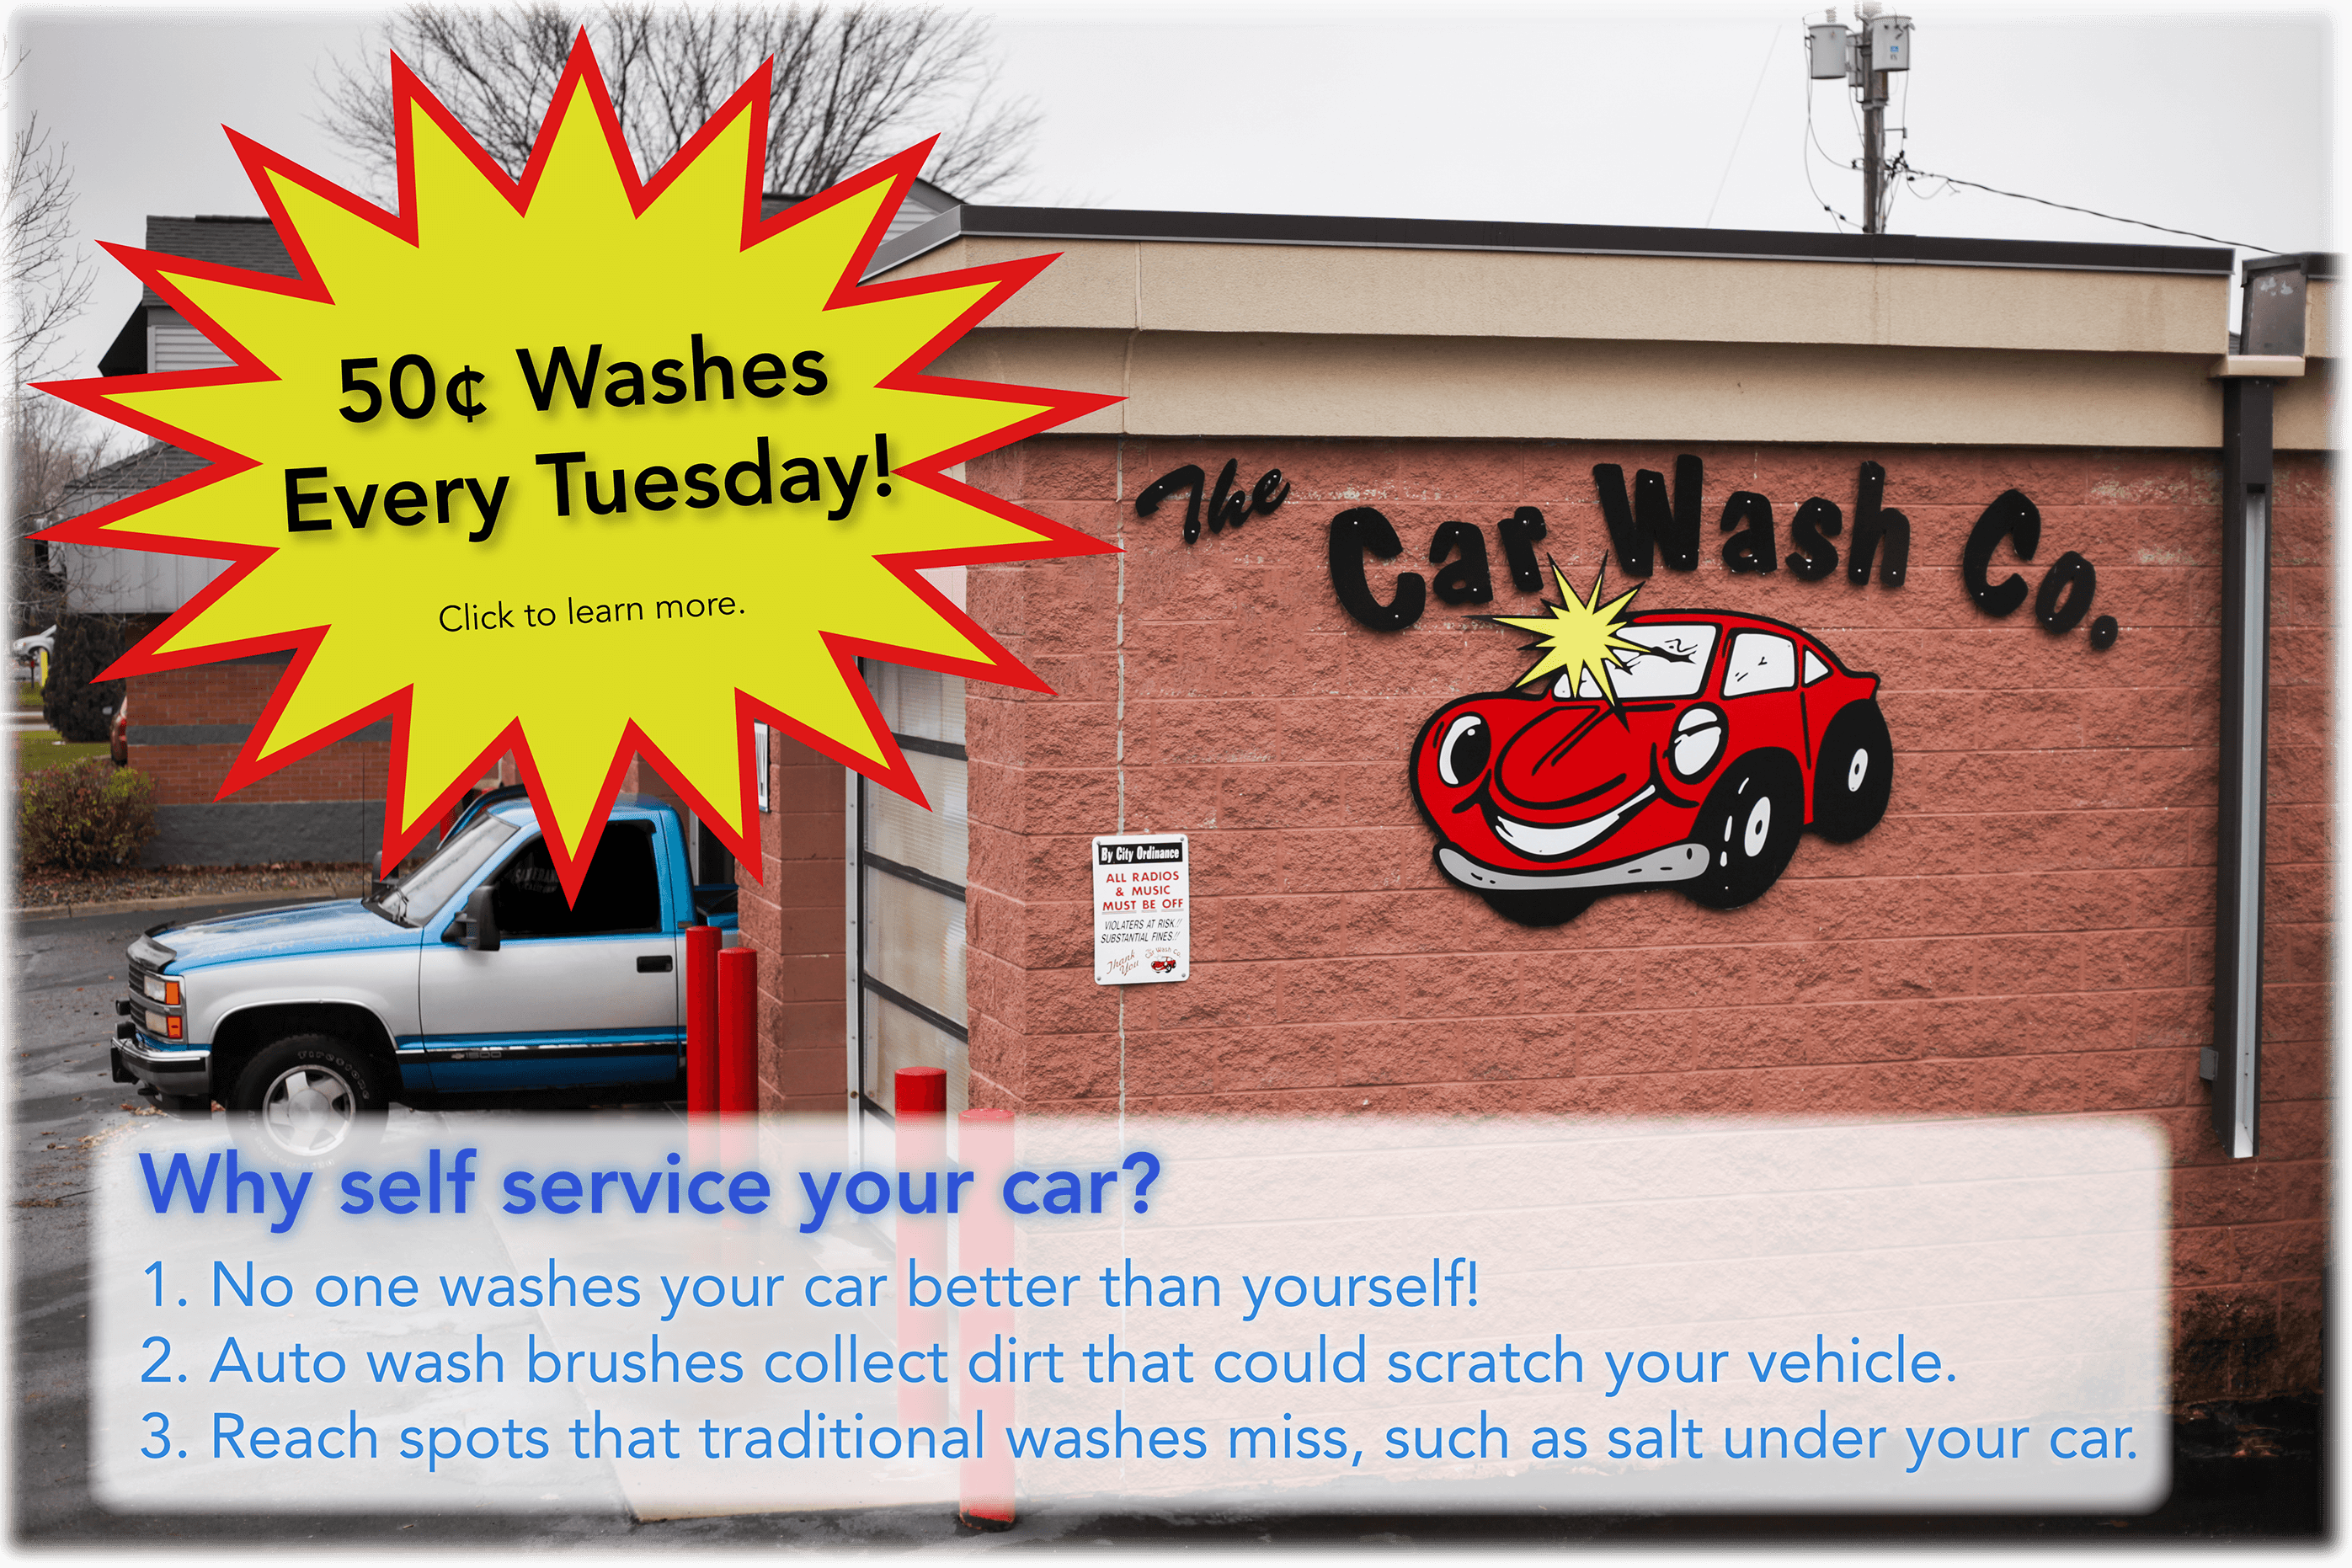 The car wash co self service car washes serving the minnesota metro home solutioingenieria Images